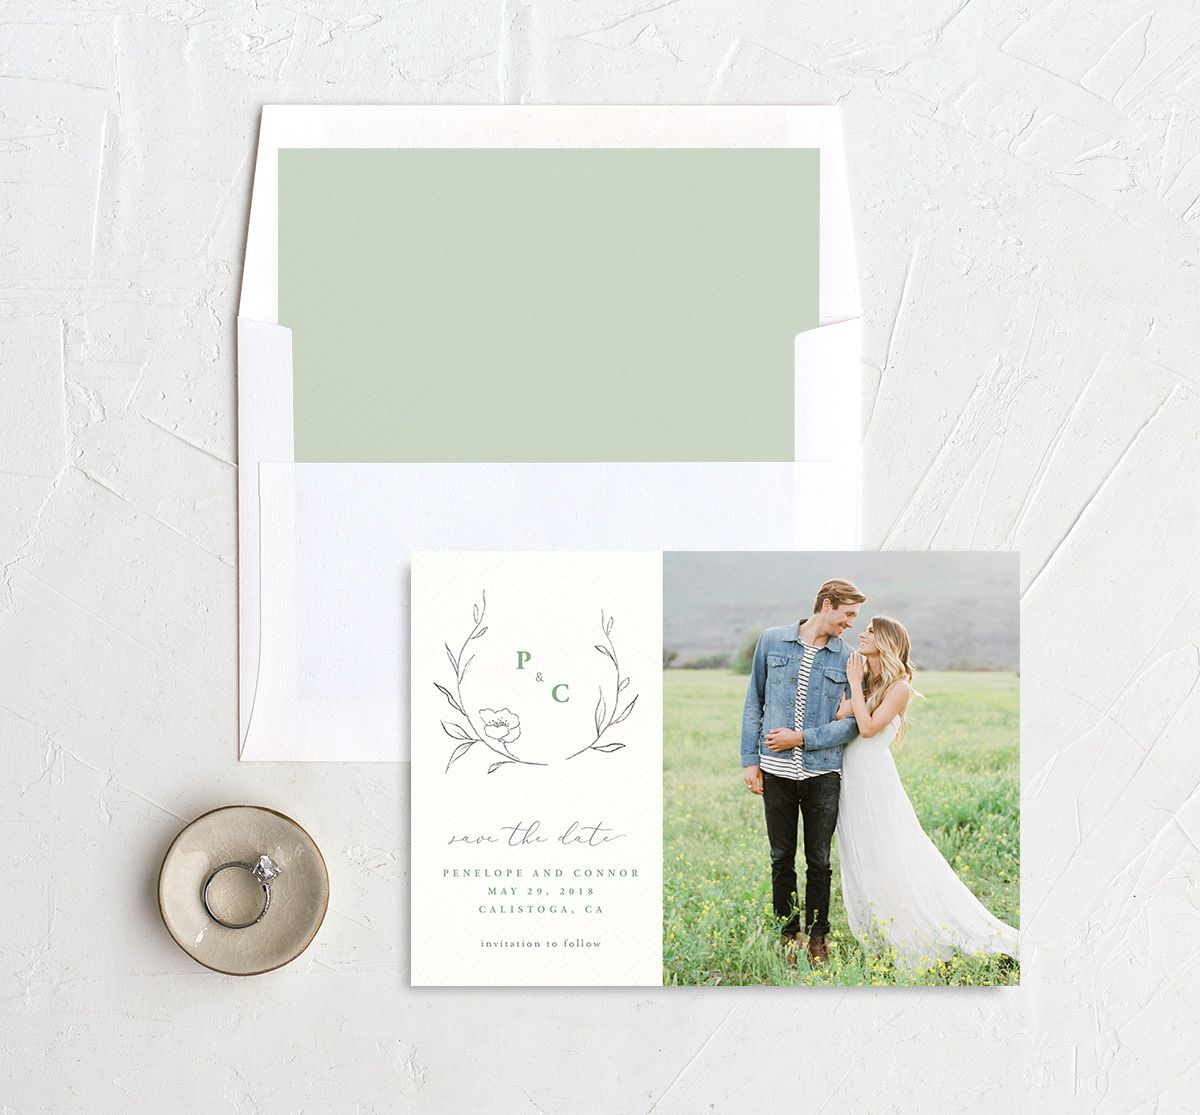 graceful botanical save the date cards in grey